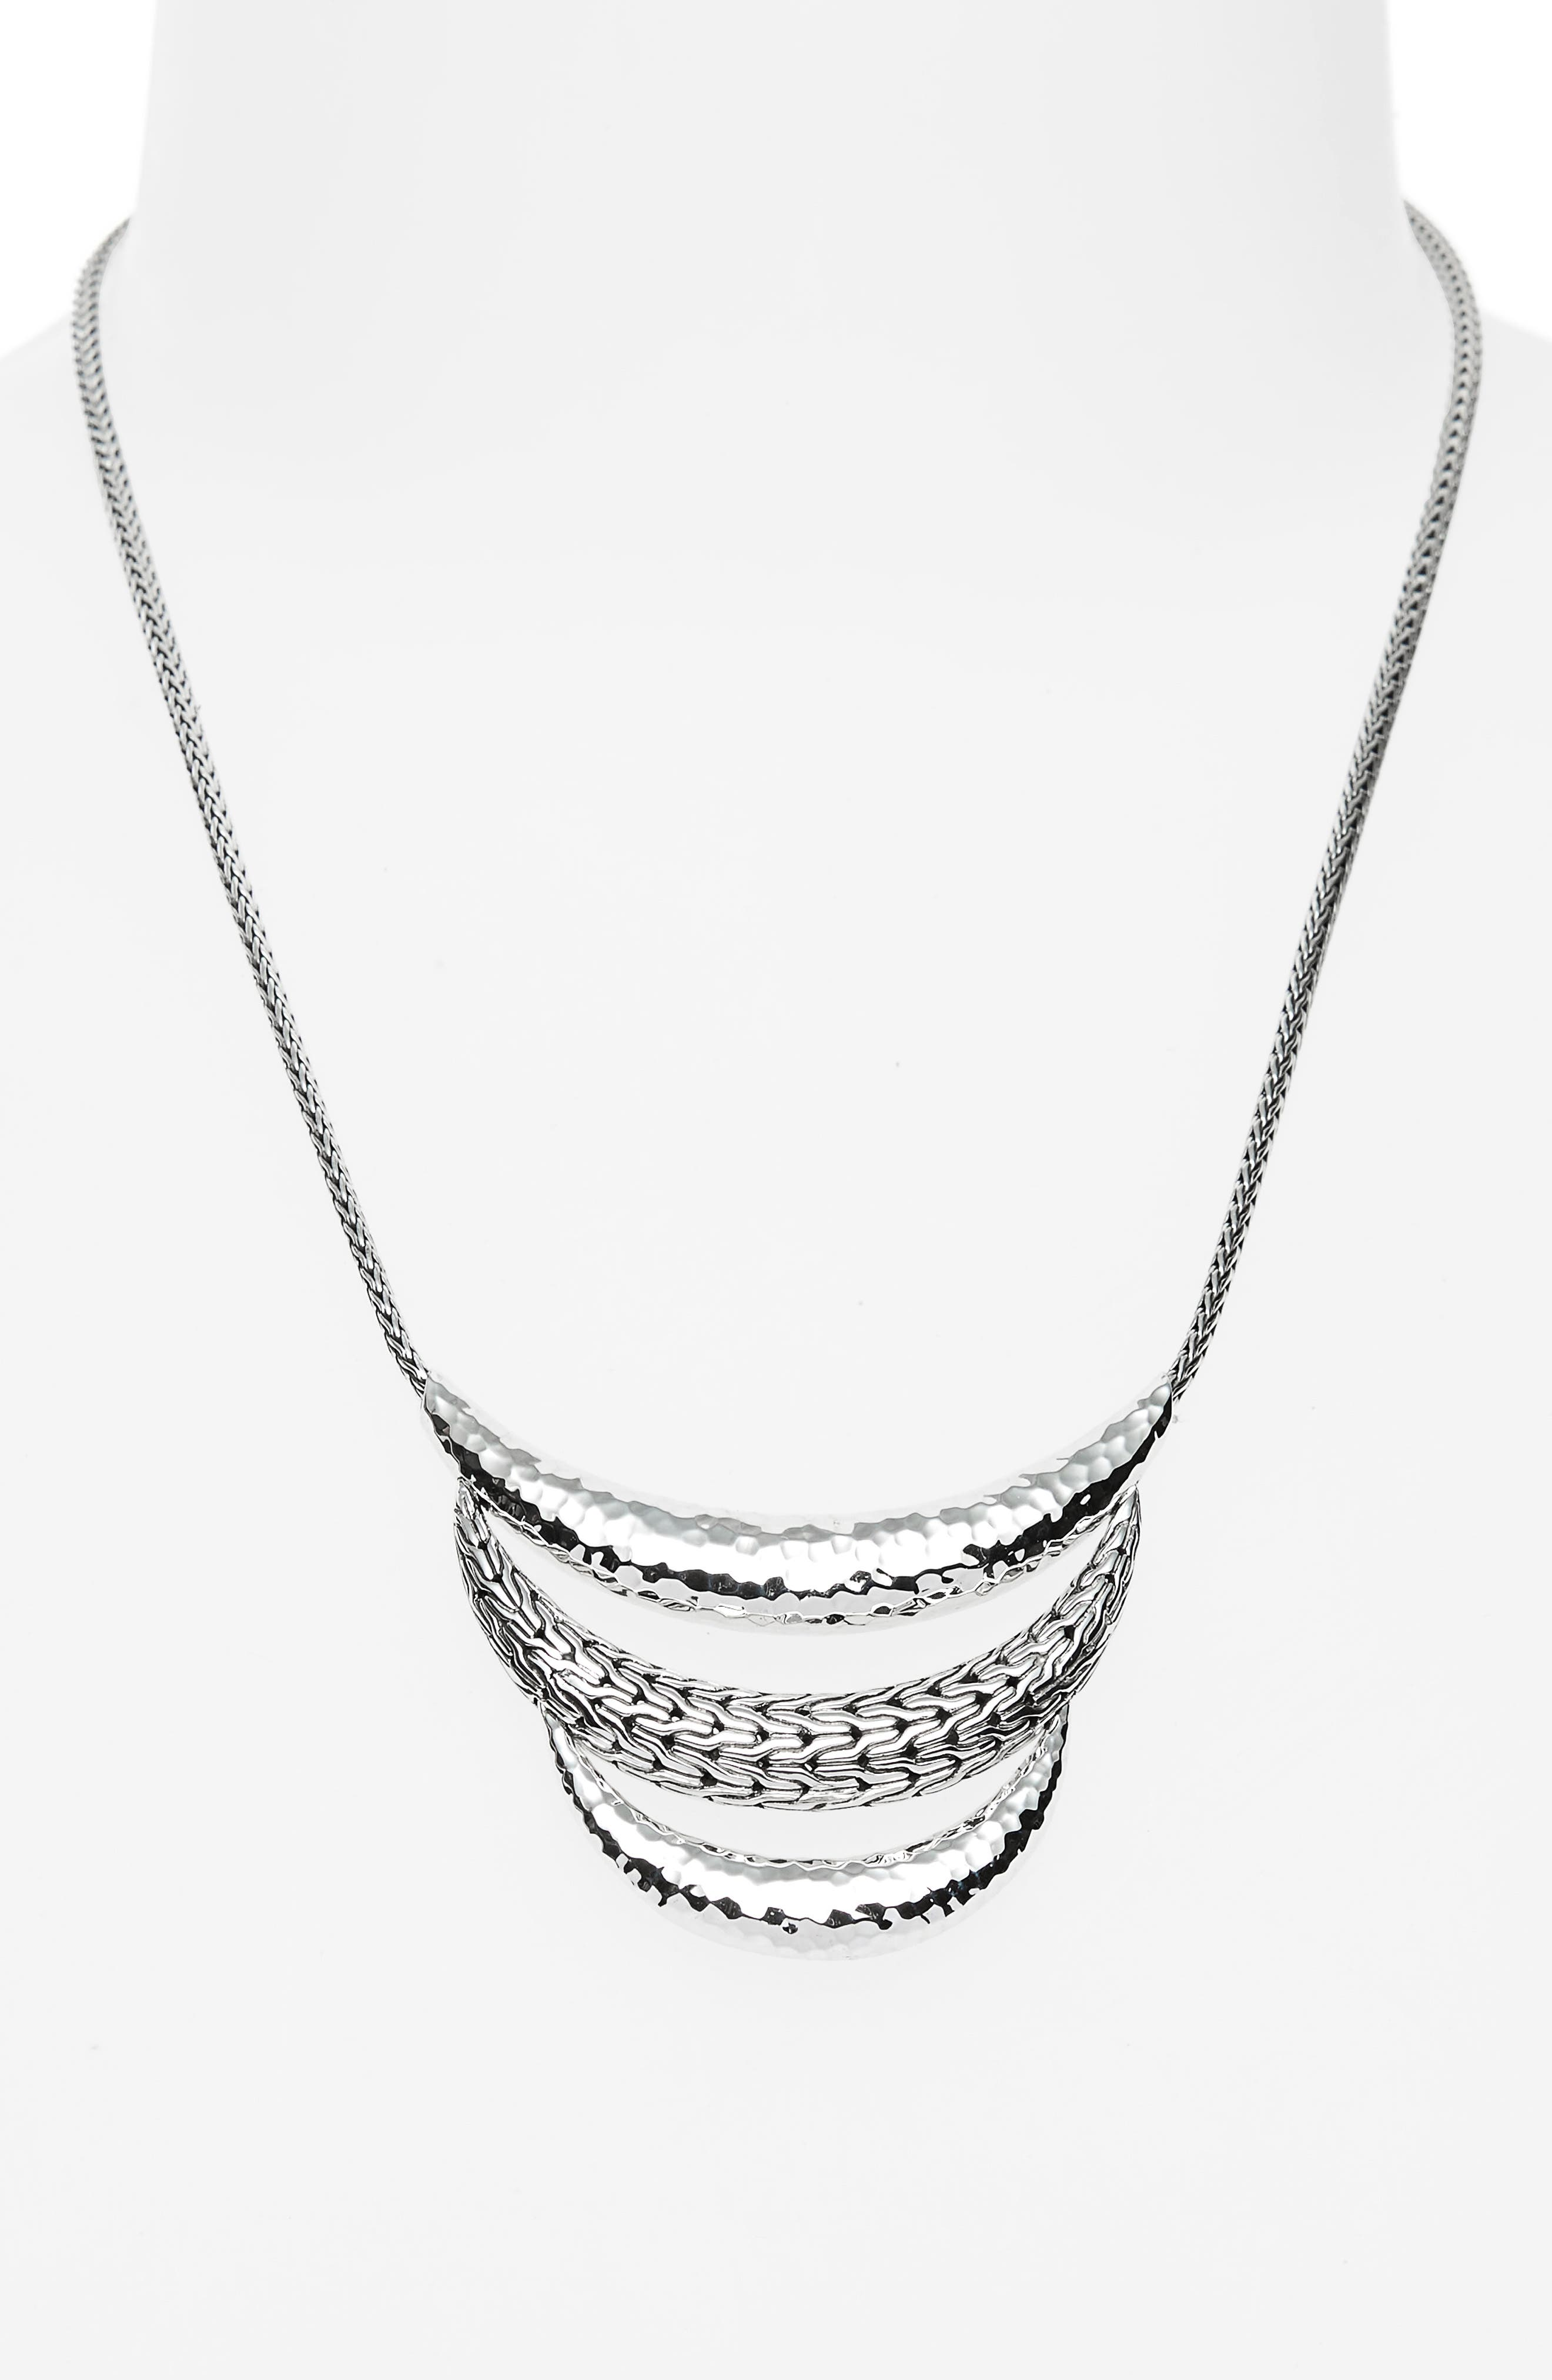 Classic Chain Hammered Silver Necklace,                             Alternate thumbnail 2, color,                             040